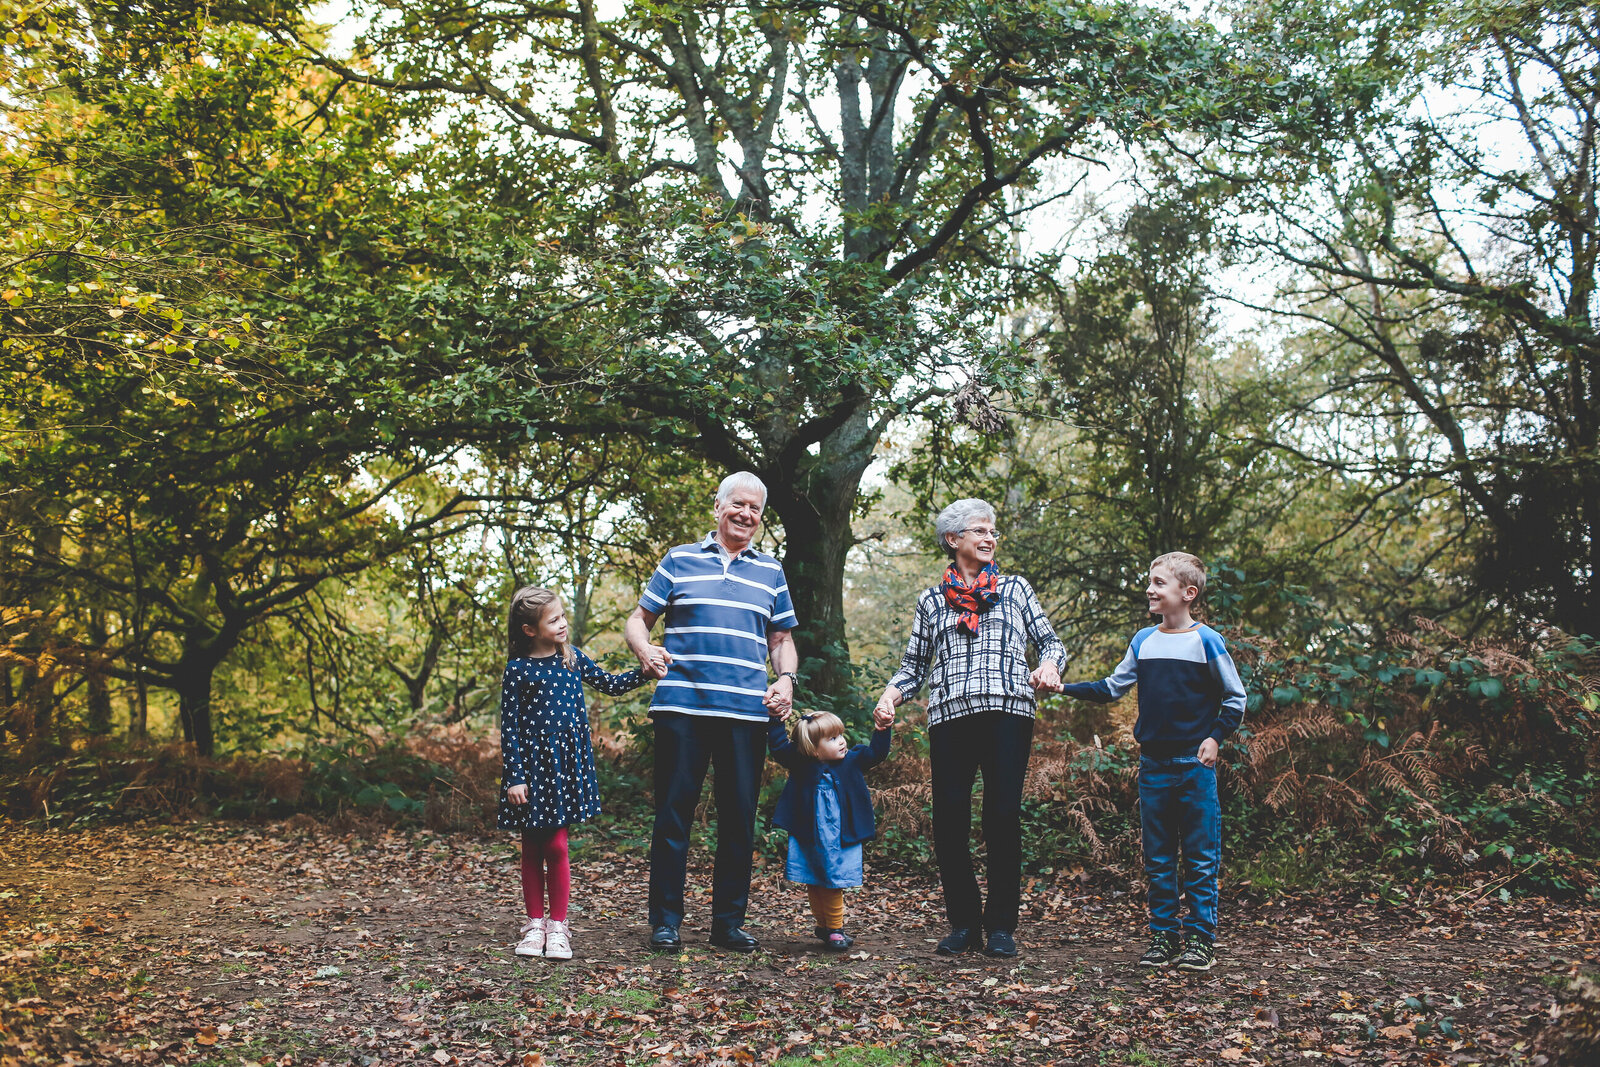 FP_FAMILY-PHOTOS-WITH-GRANDPARENTS-IN-WOODS-0006